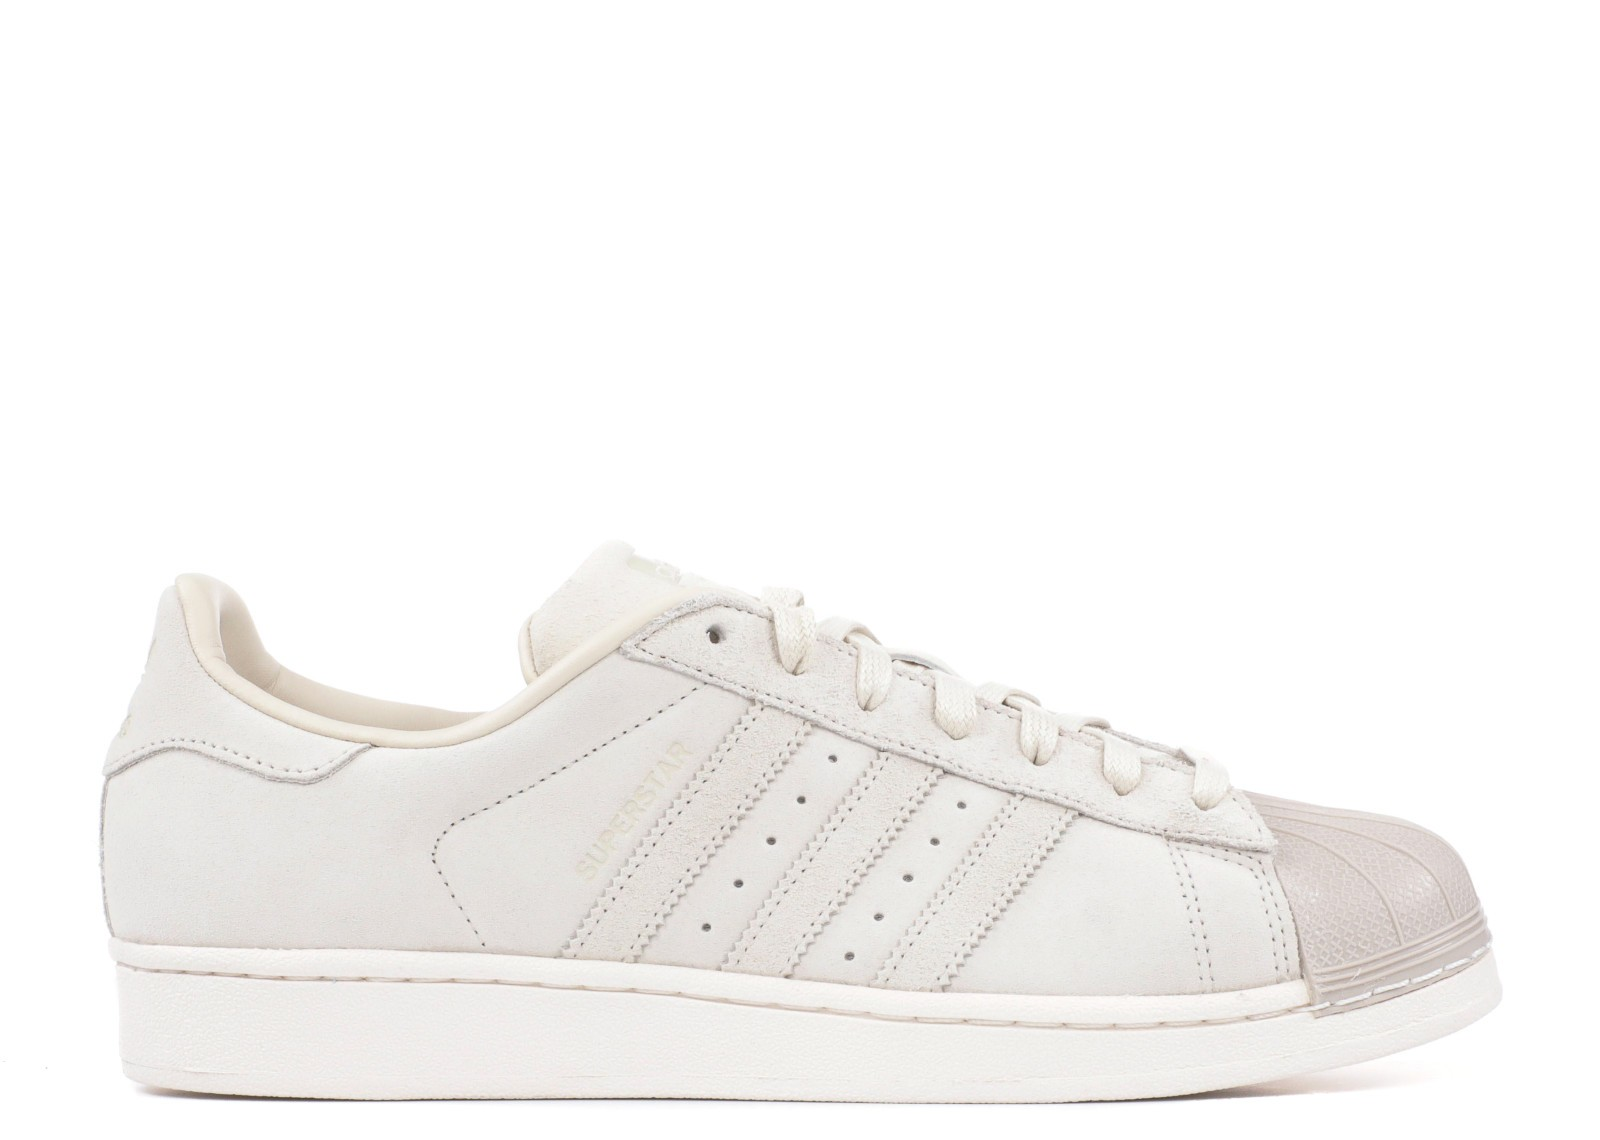 adidas Superstar Skor BZ0199